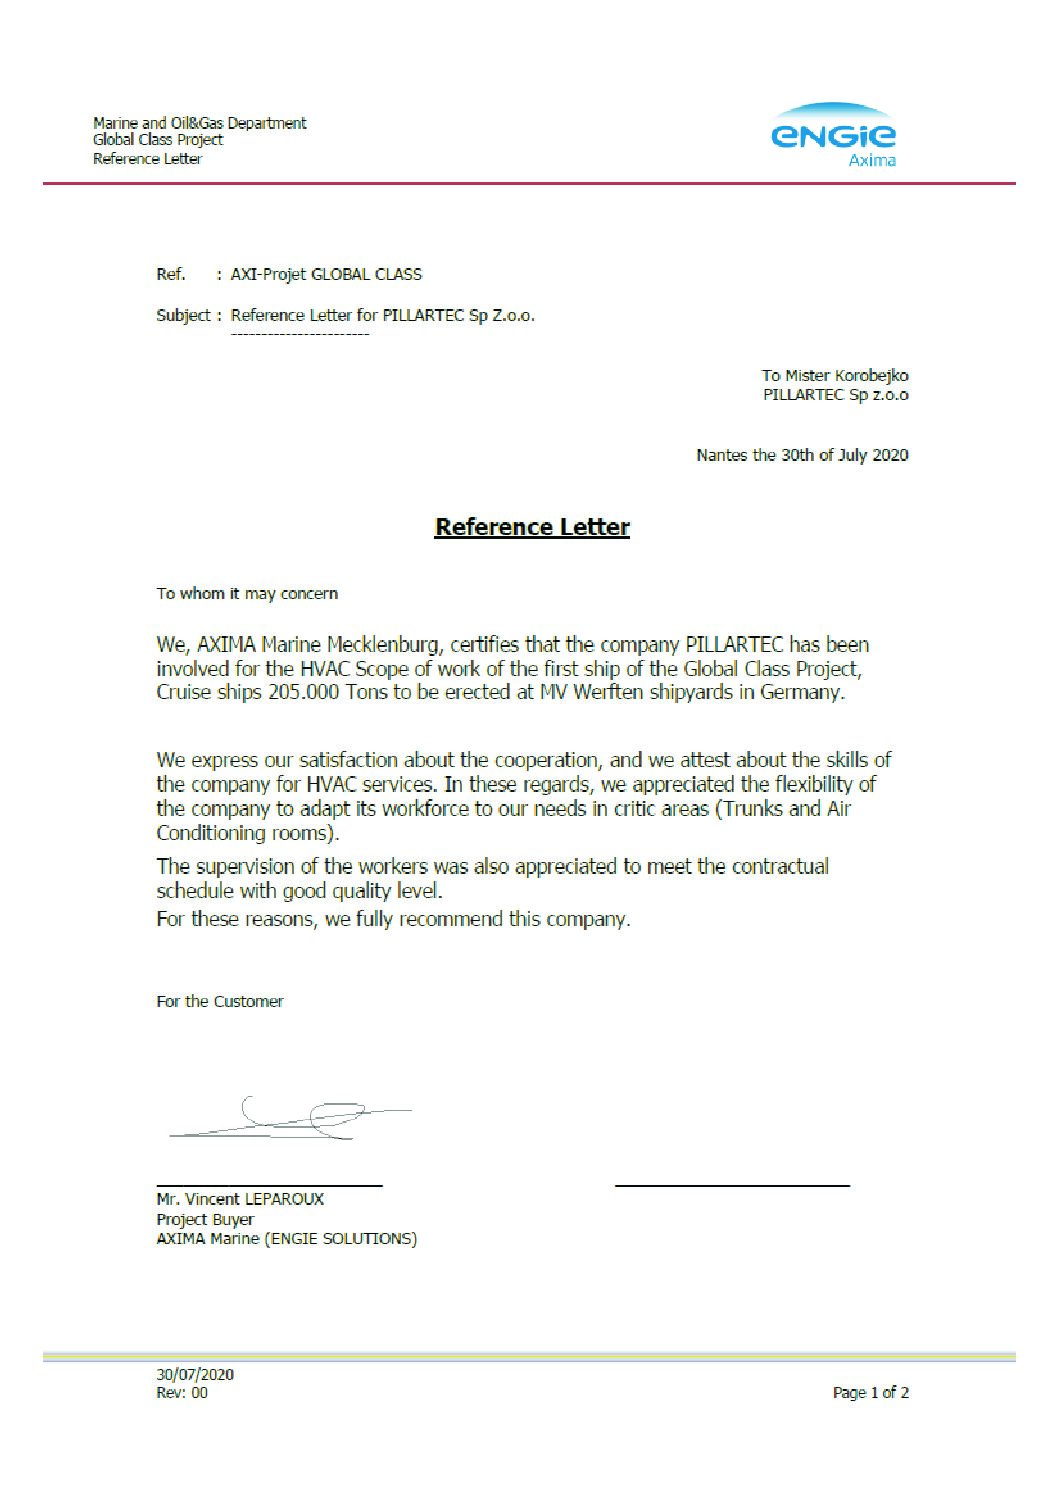 Reference-Letter-2-ENGIE-AXIMA-Pillartec-sp.-z-o.o.-1.pdf